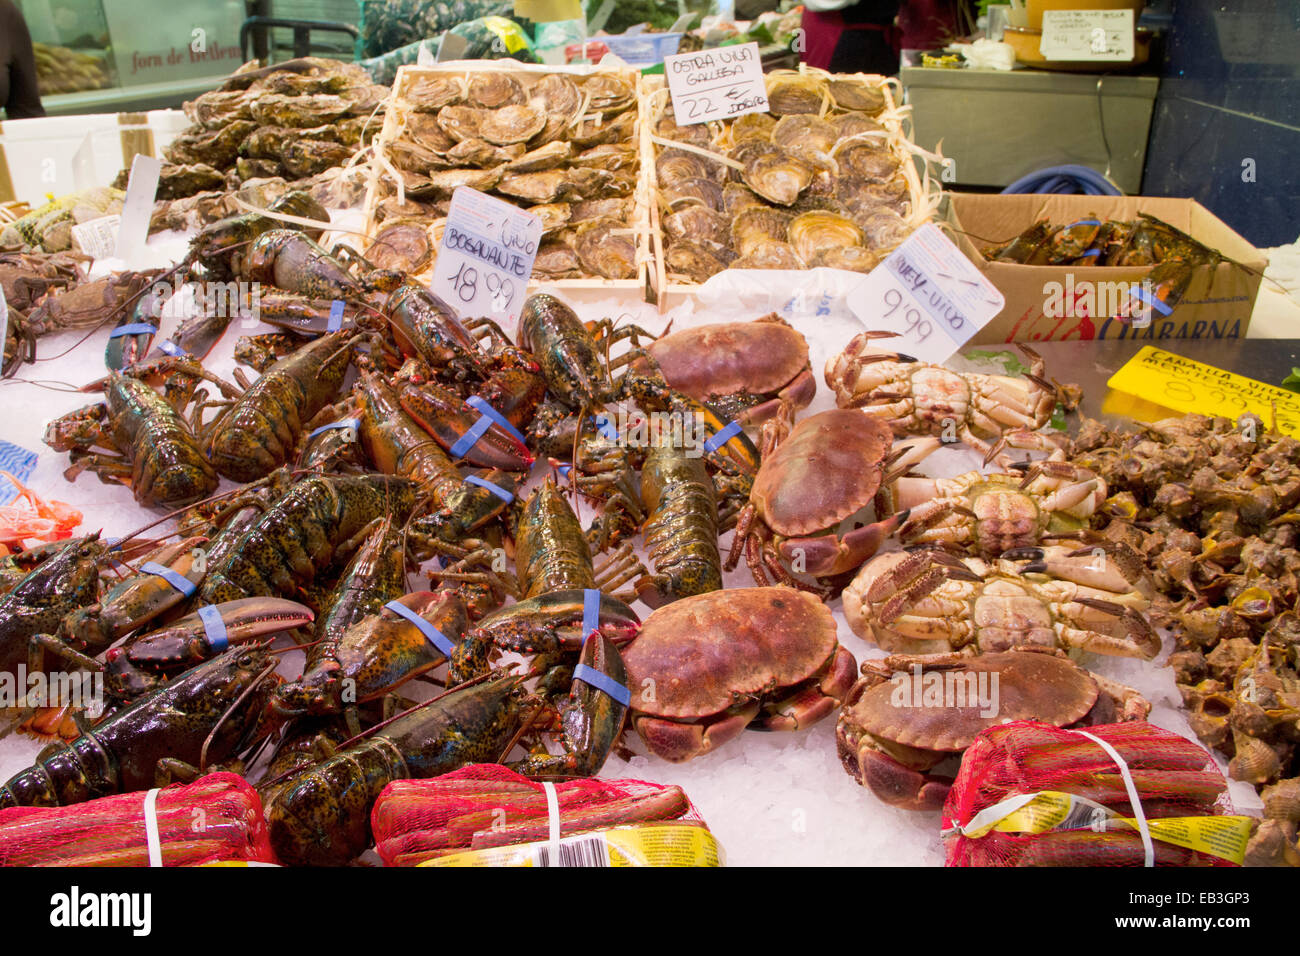 Stall displays fresh seafood including crabs and lobster for